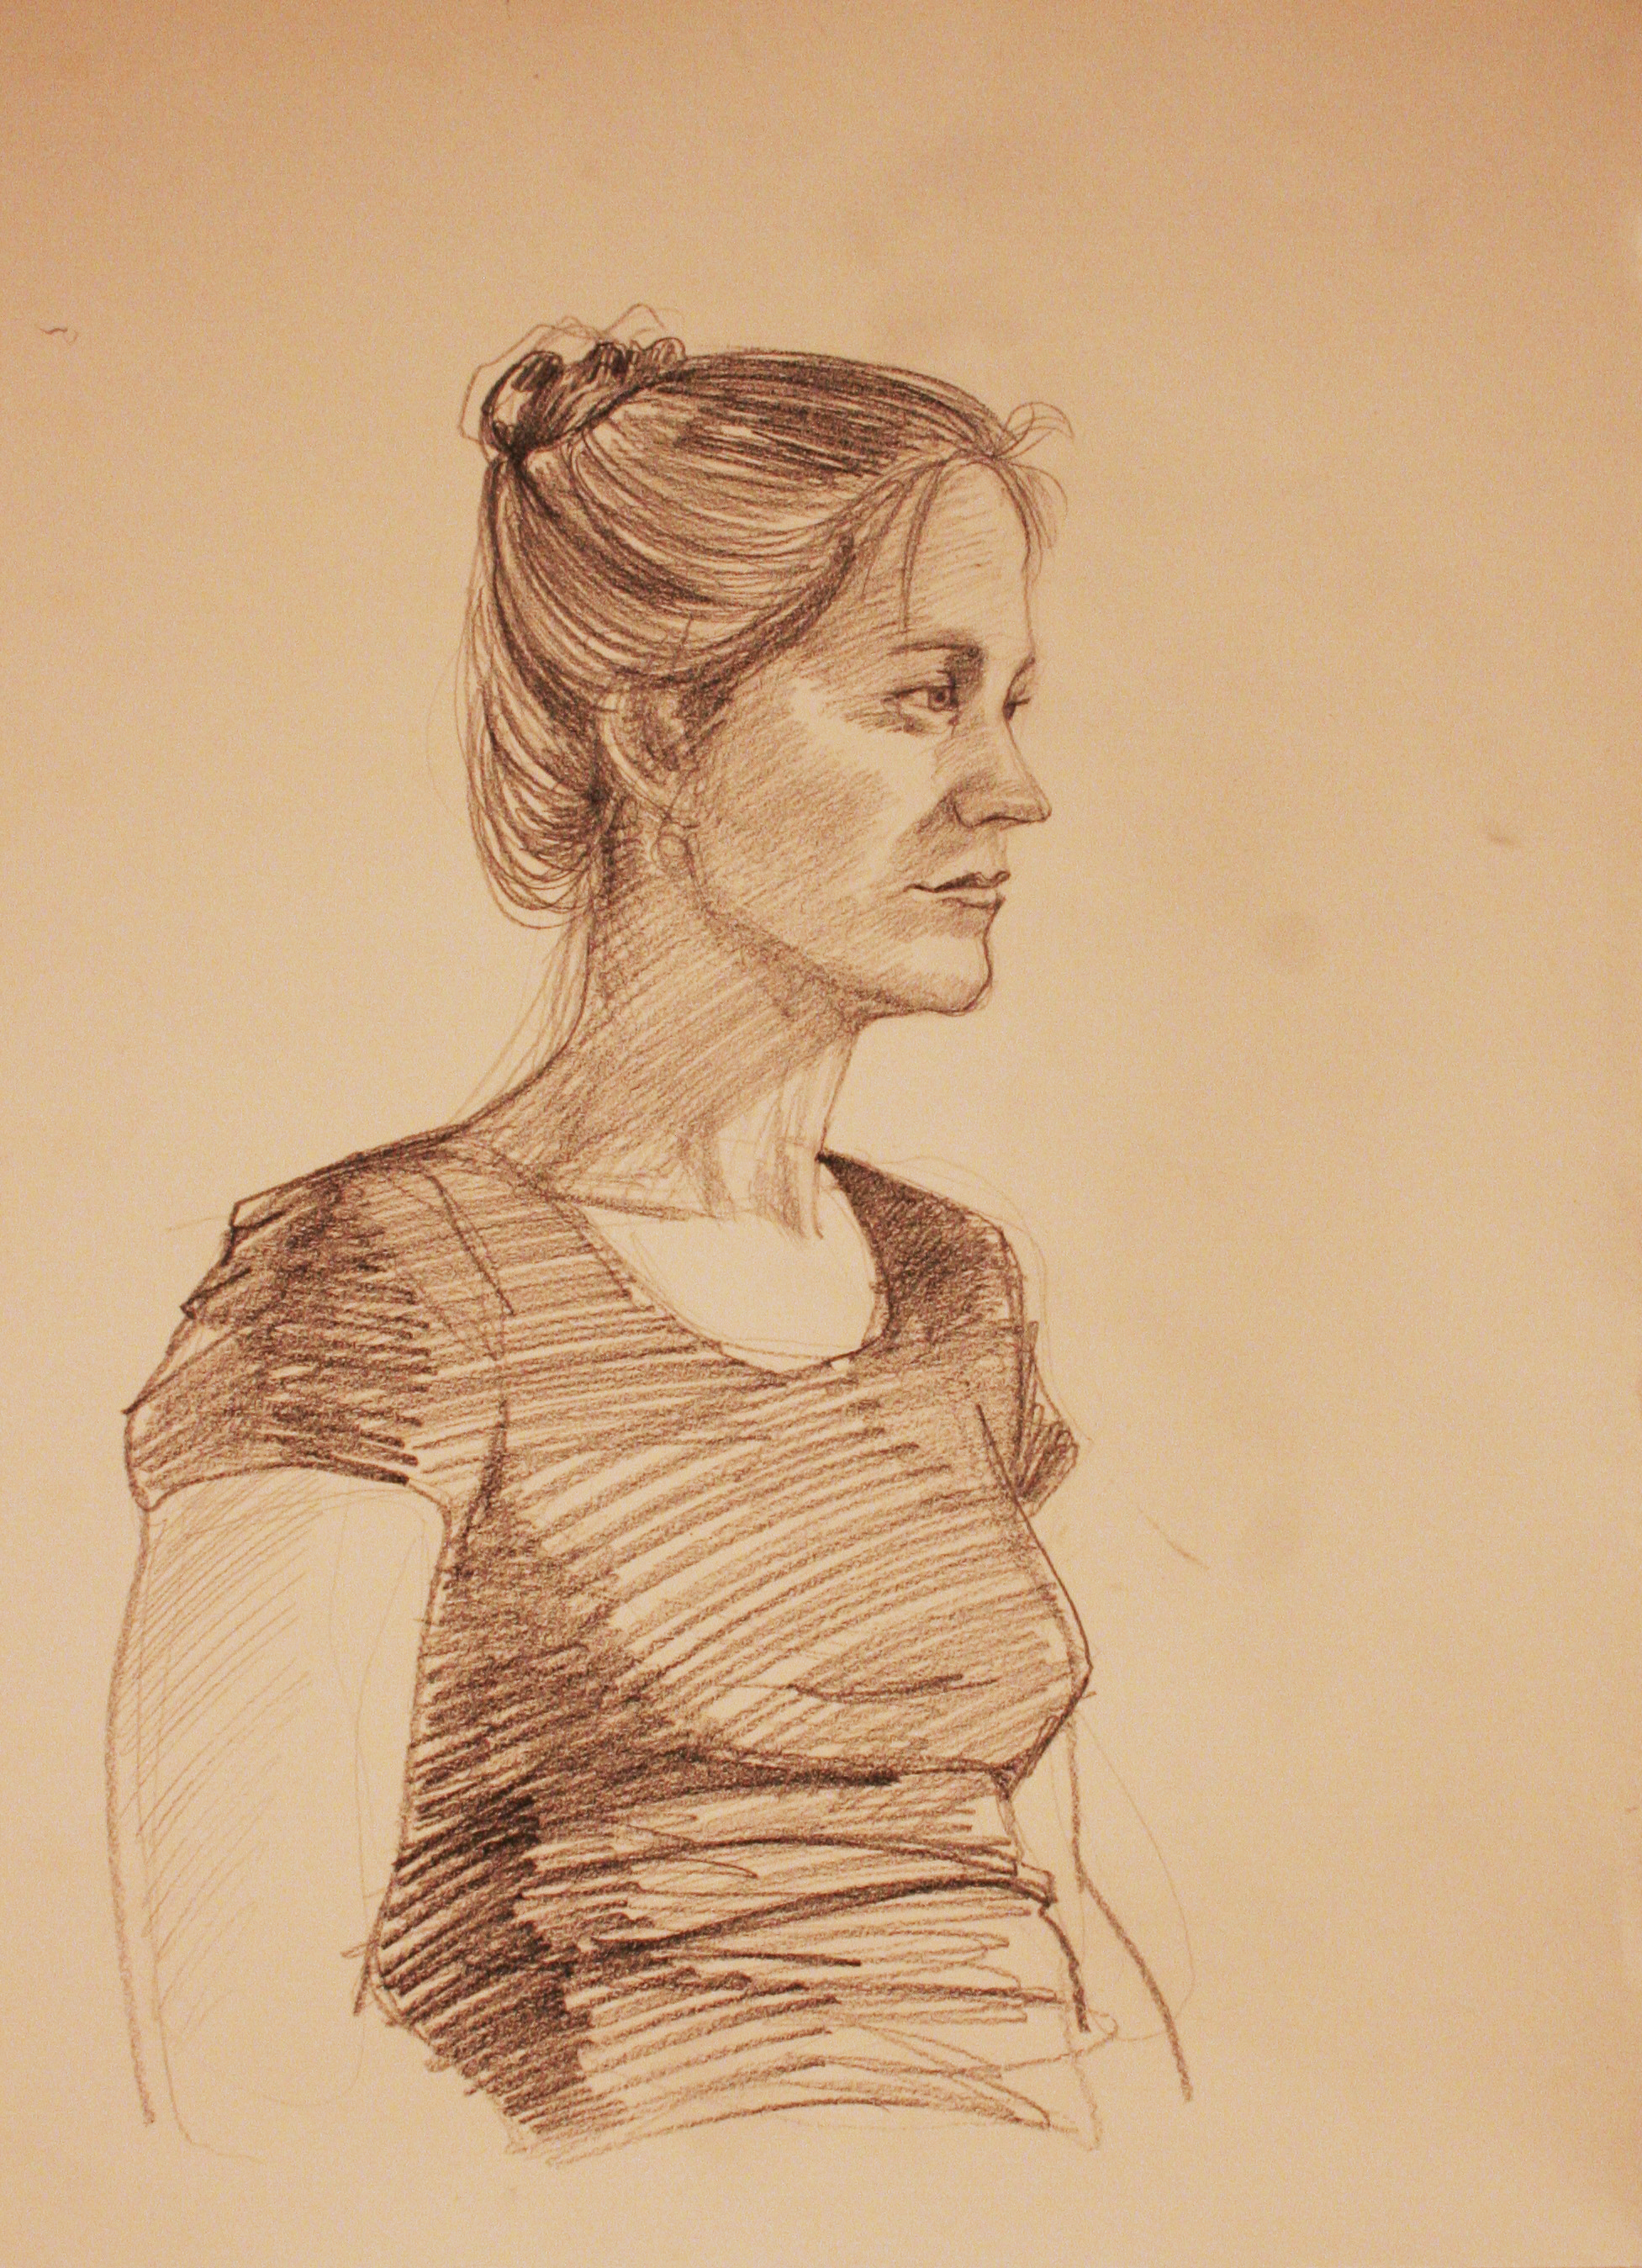 Peter Seward did this hour drawing.